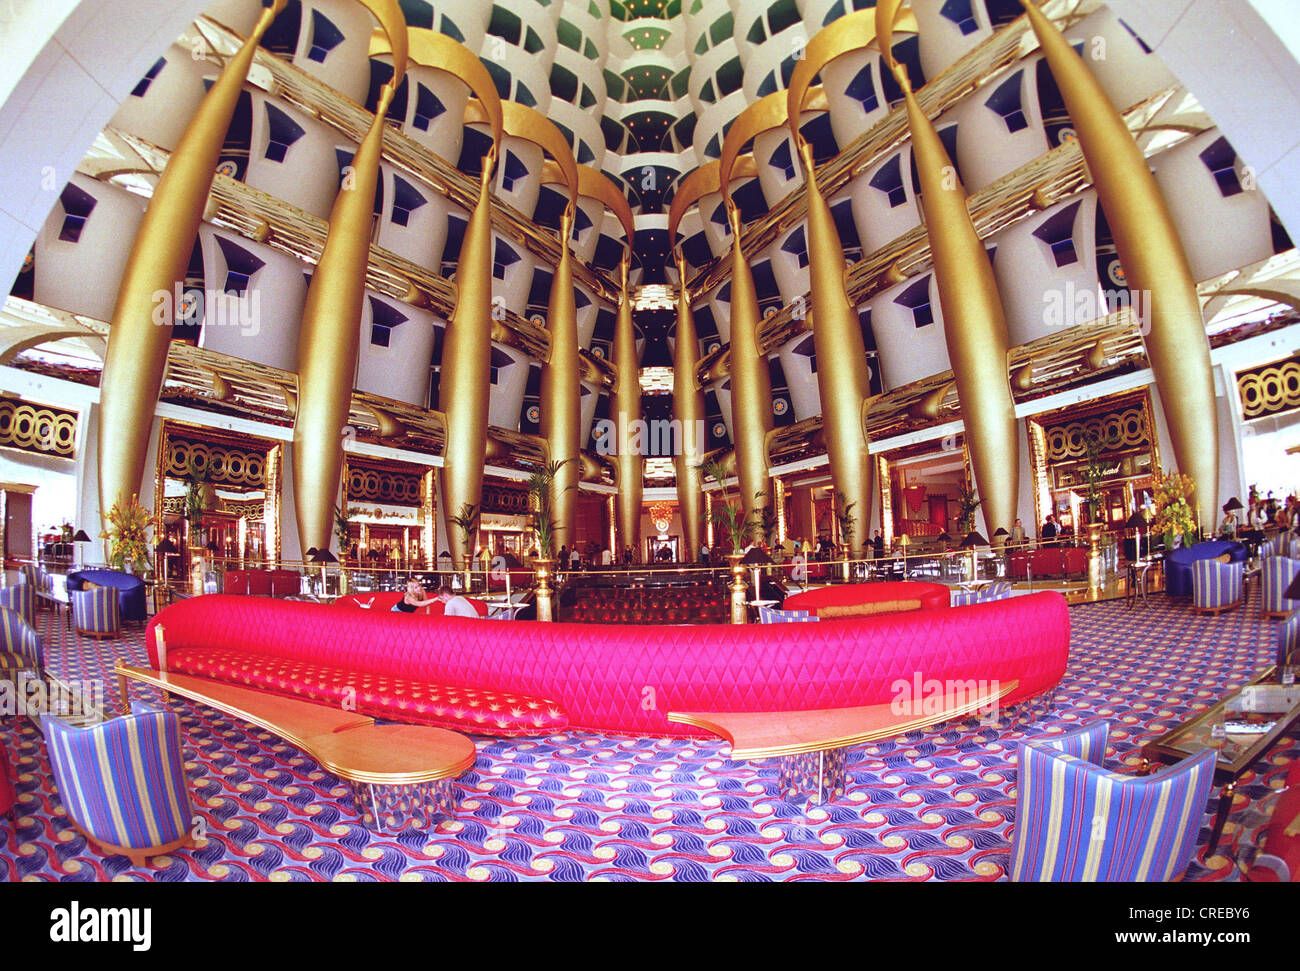 Burj al arab the most expensive hotel in the world dubai for Nicest hotel in the world dubai